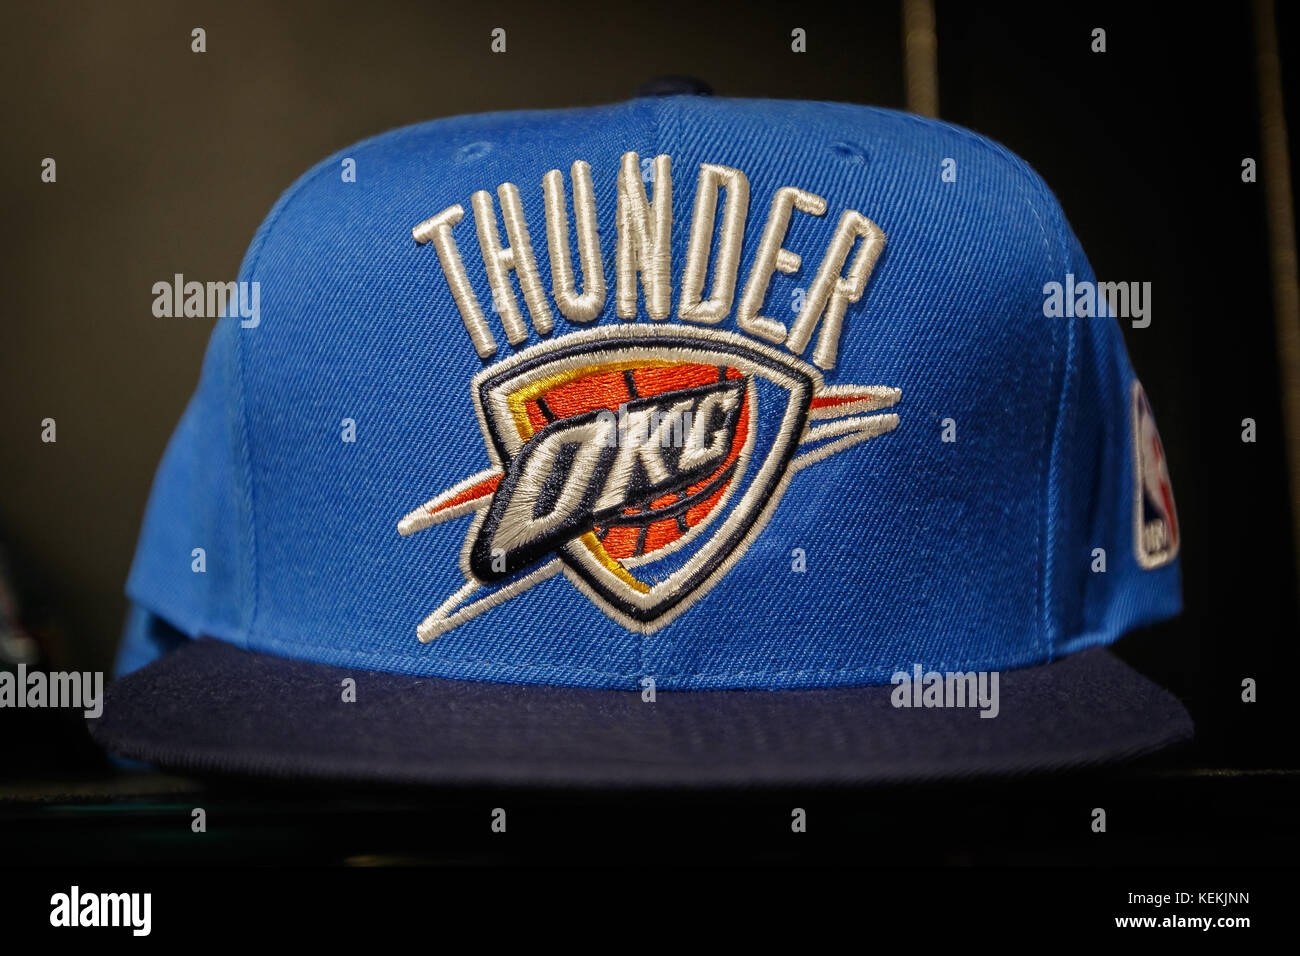 best service 51bc8 6d934 Oklahoma City Thunder hat on sale in the NBA store in ...